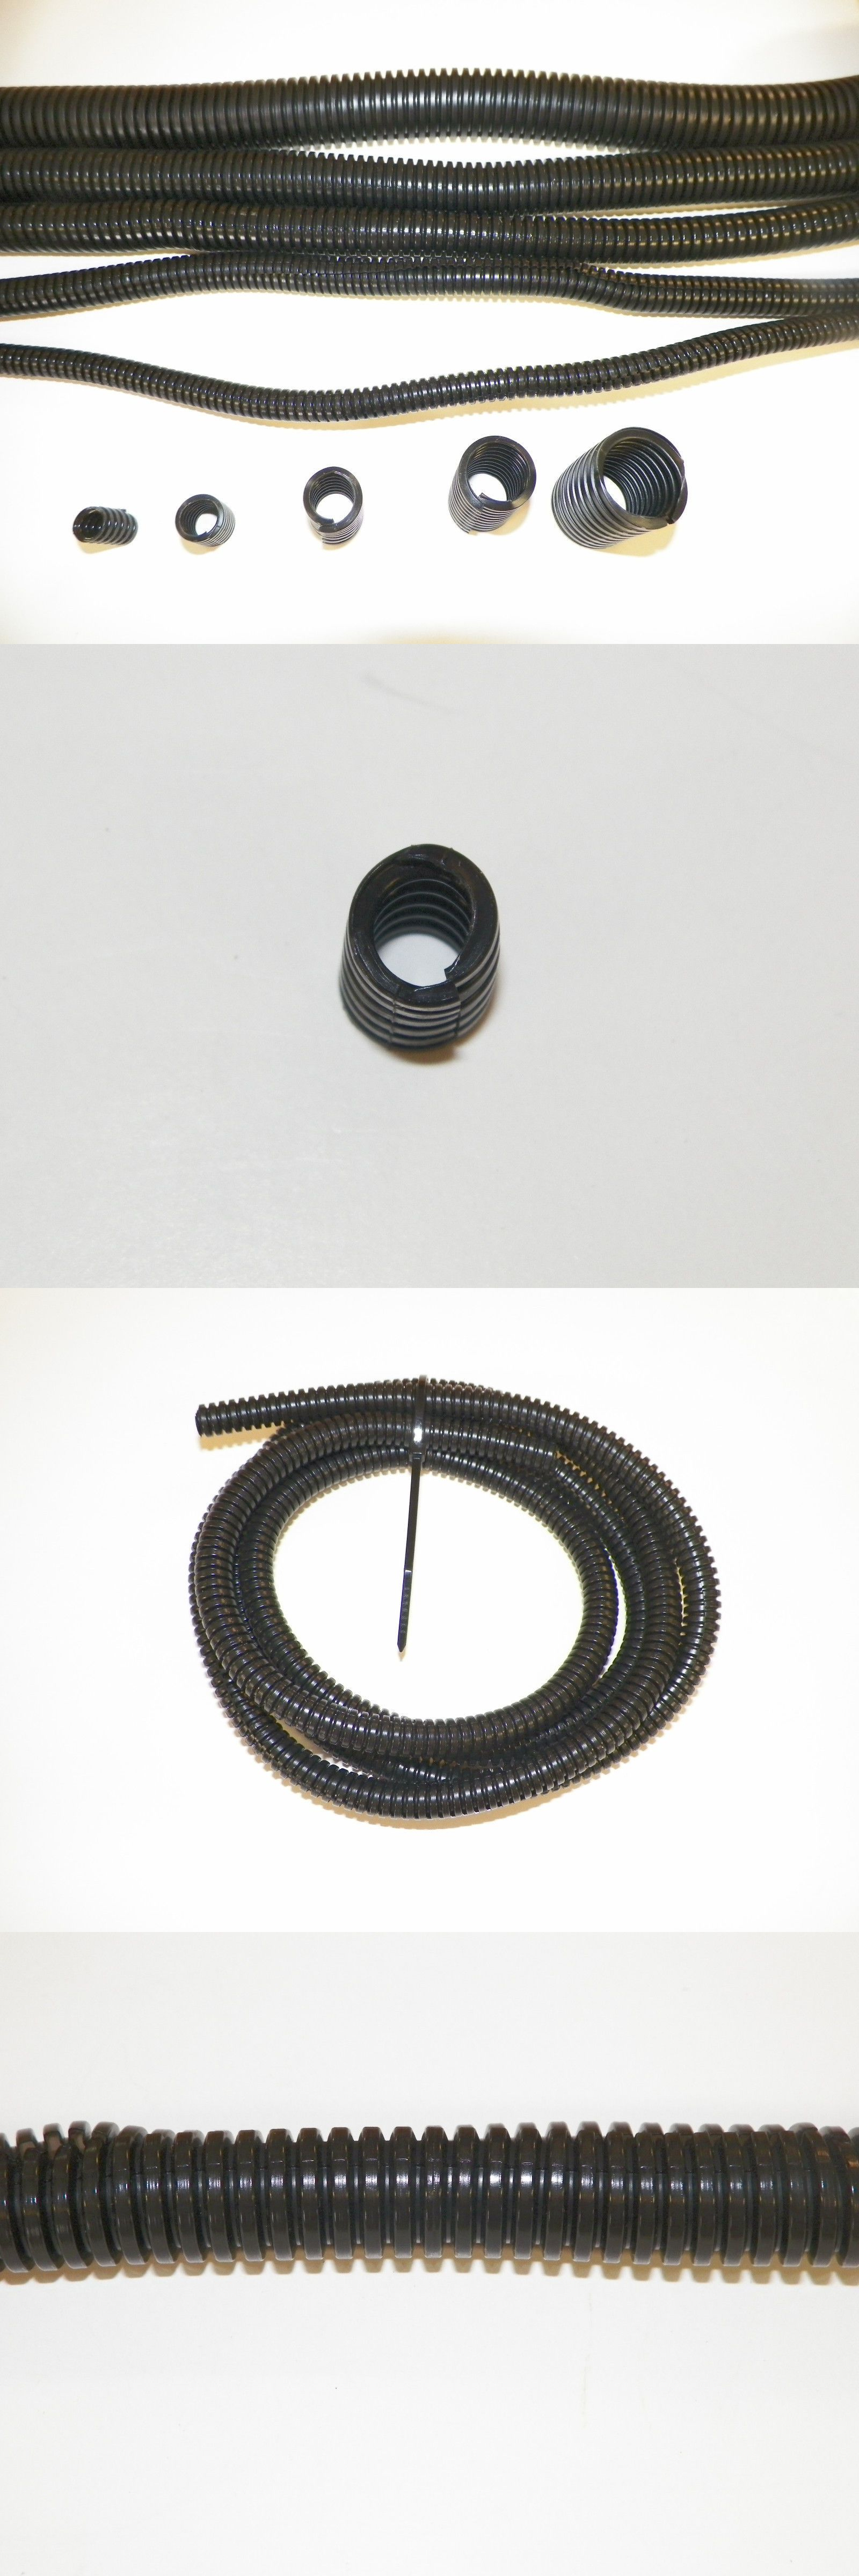 other crafts 75576 black split sleeve wiring harness loom flexable wire cover protection flex  [ 1600 x 4800 Pixel ]